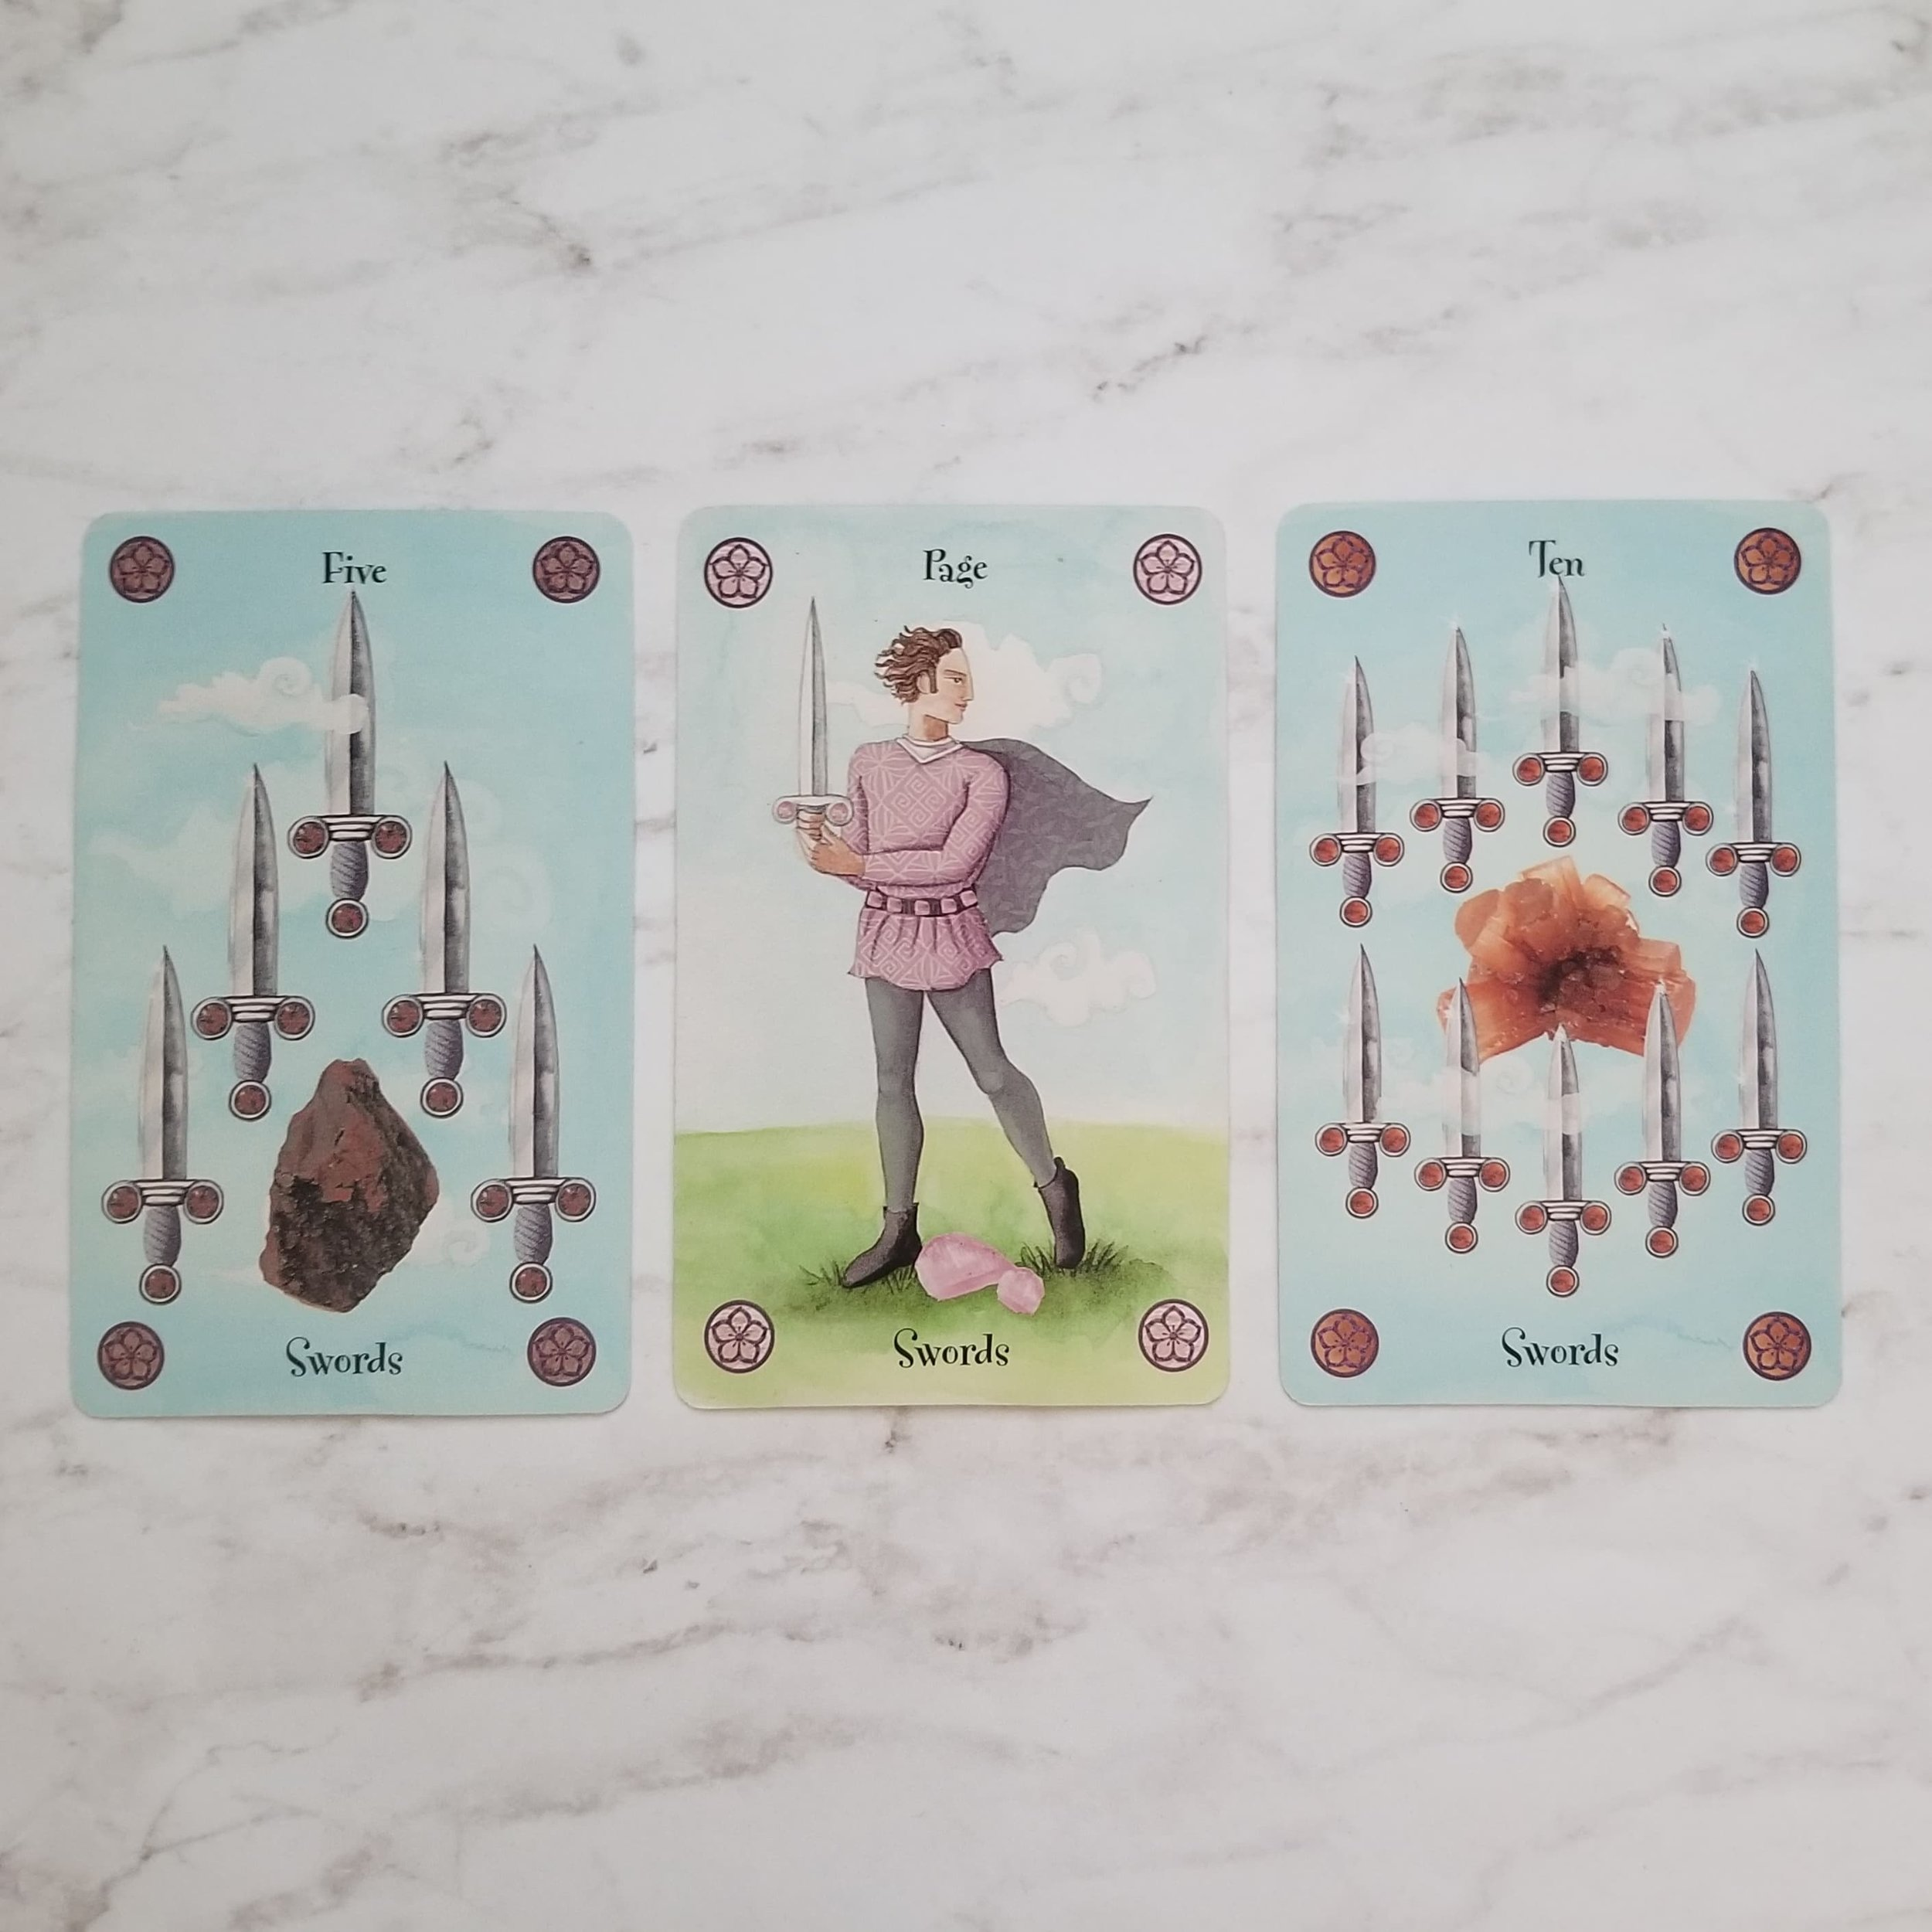 From left to right: Five of Swords, Page of Swords, Ten of Swords